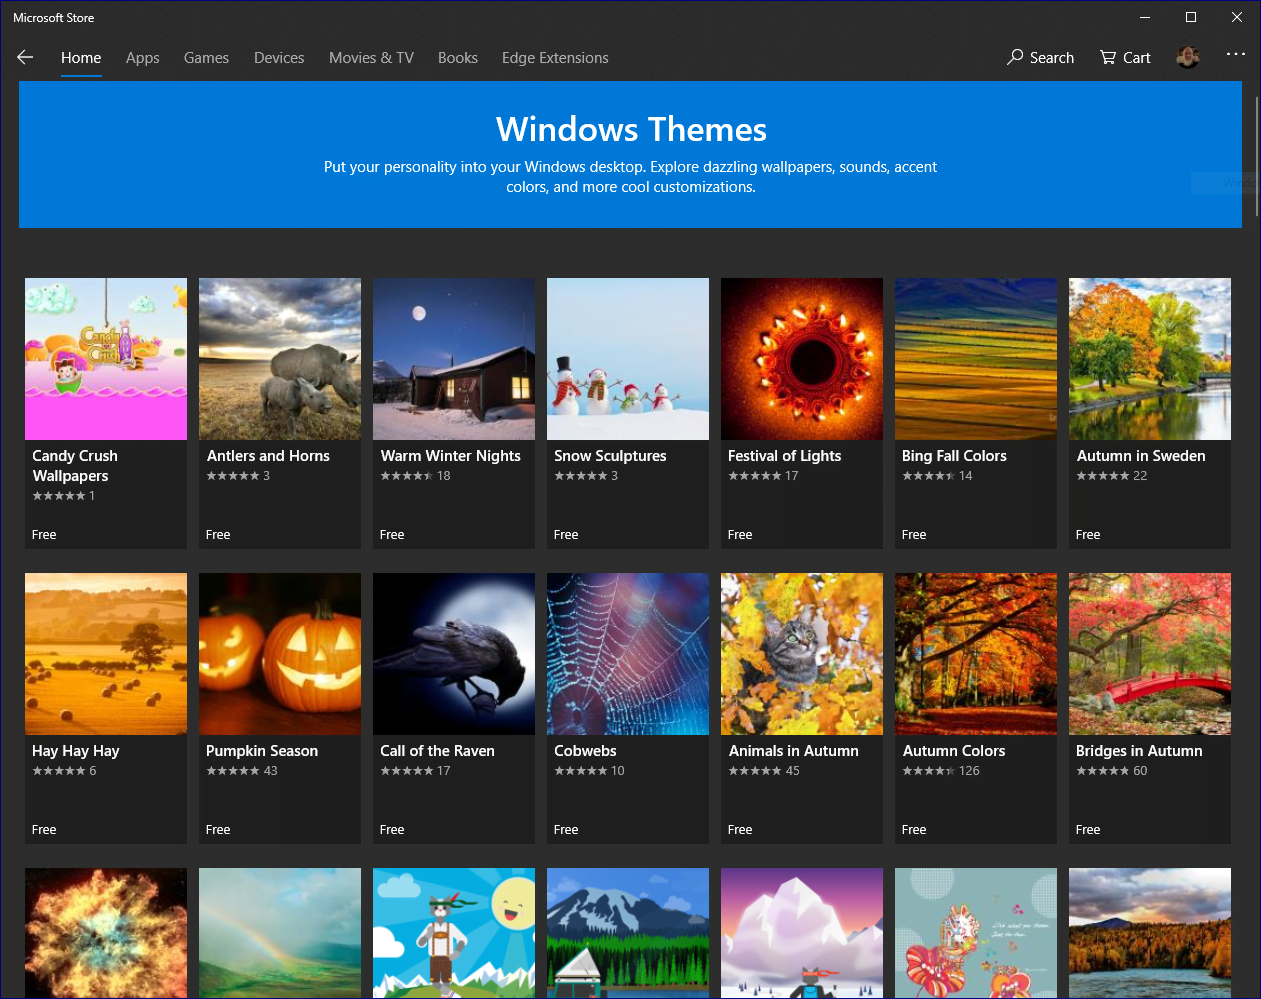 Themes for Windows 10 in the Microsoft Store